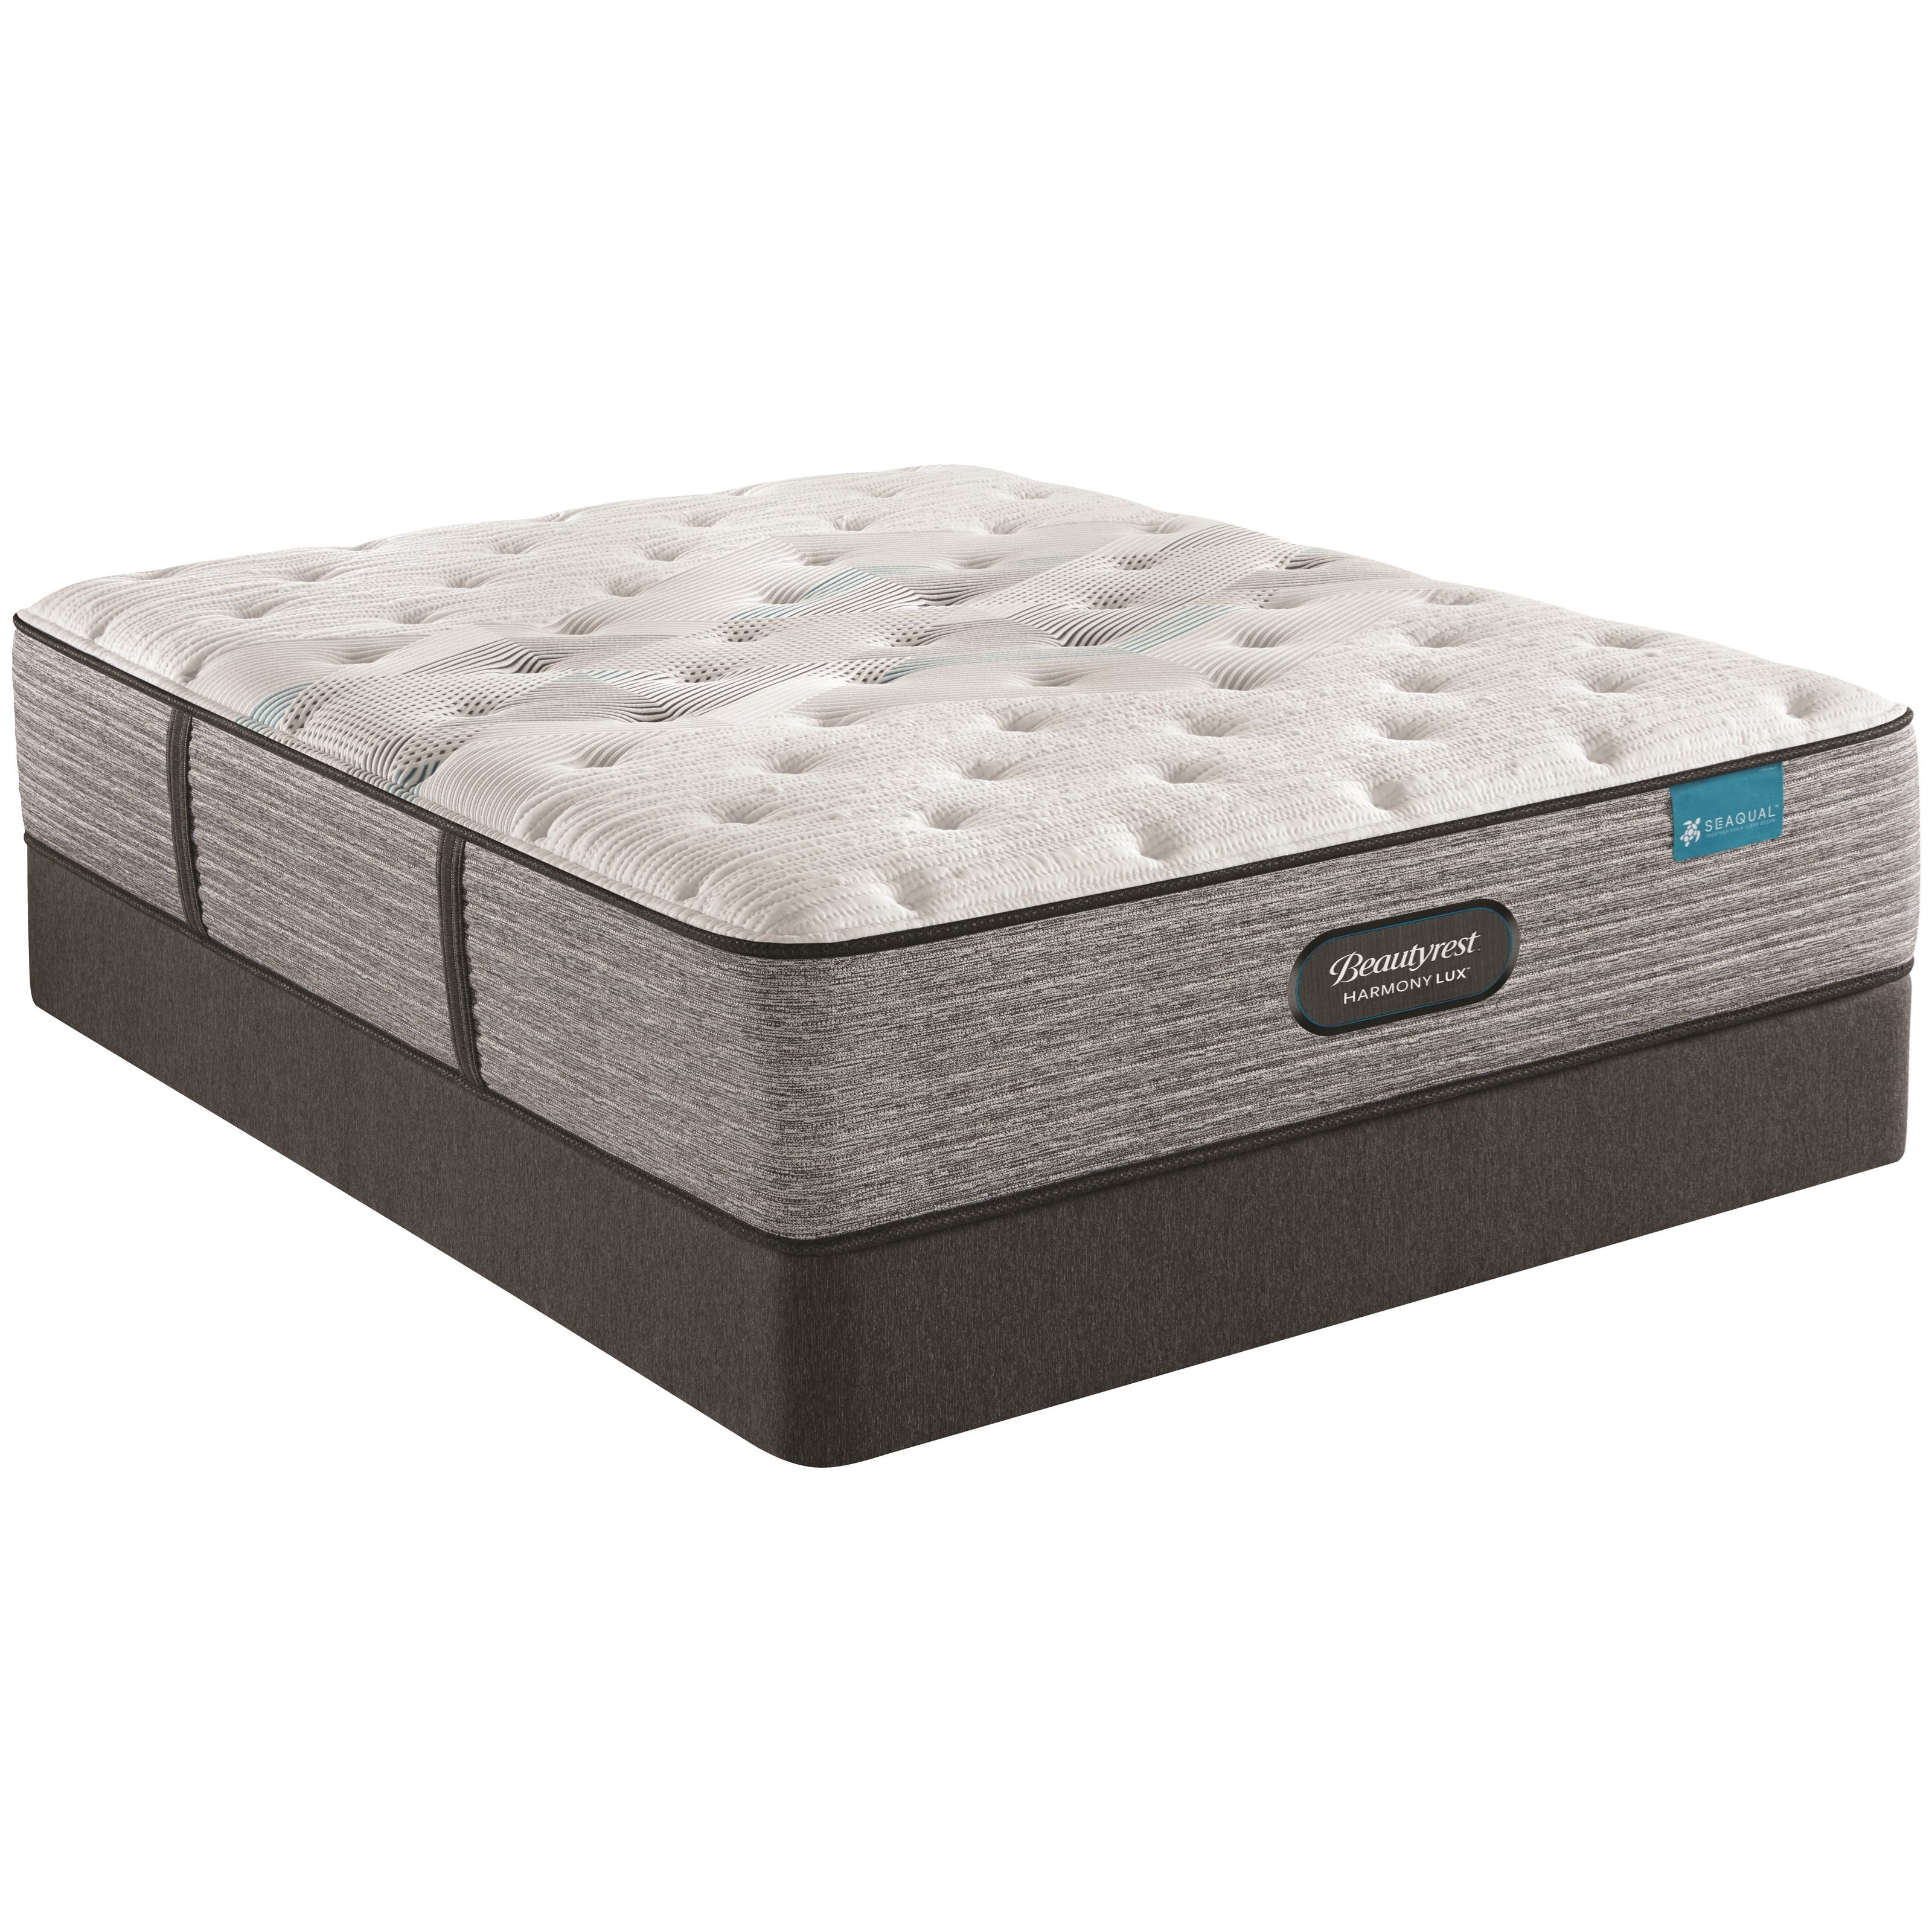 "King 13 3/4"" Medium Firm Mattress Set"